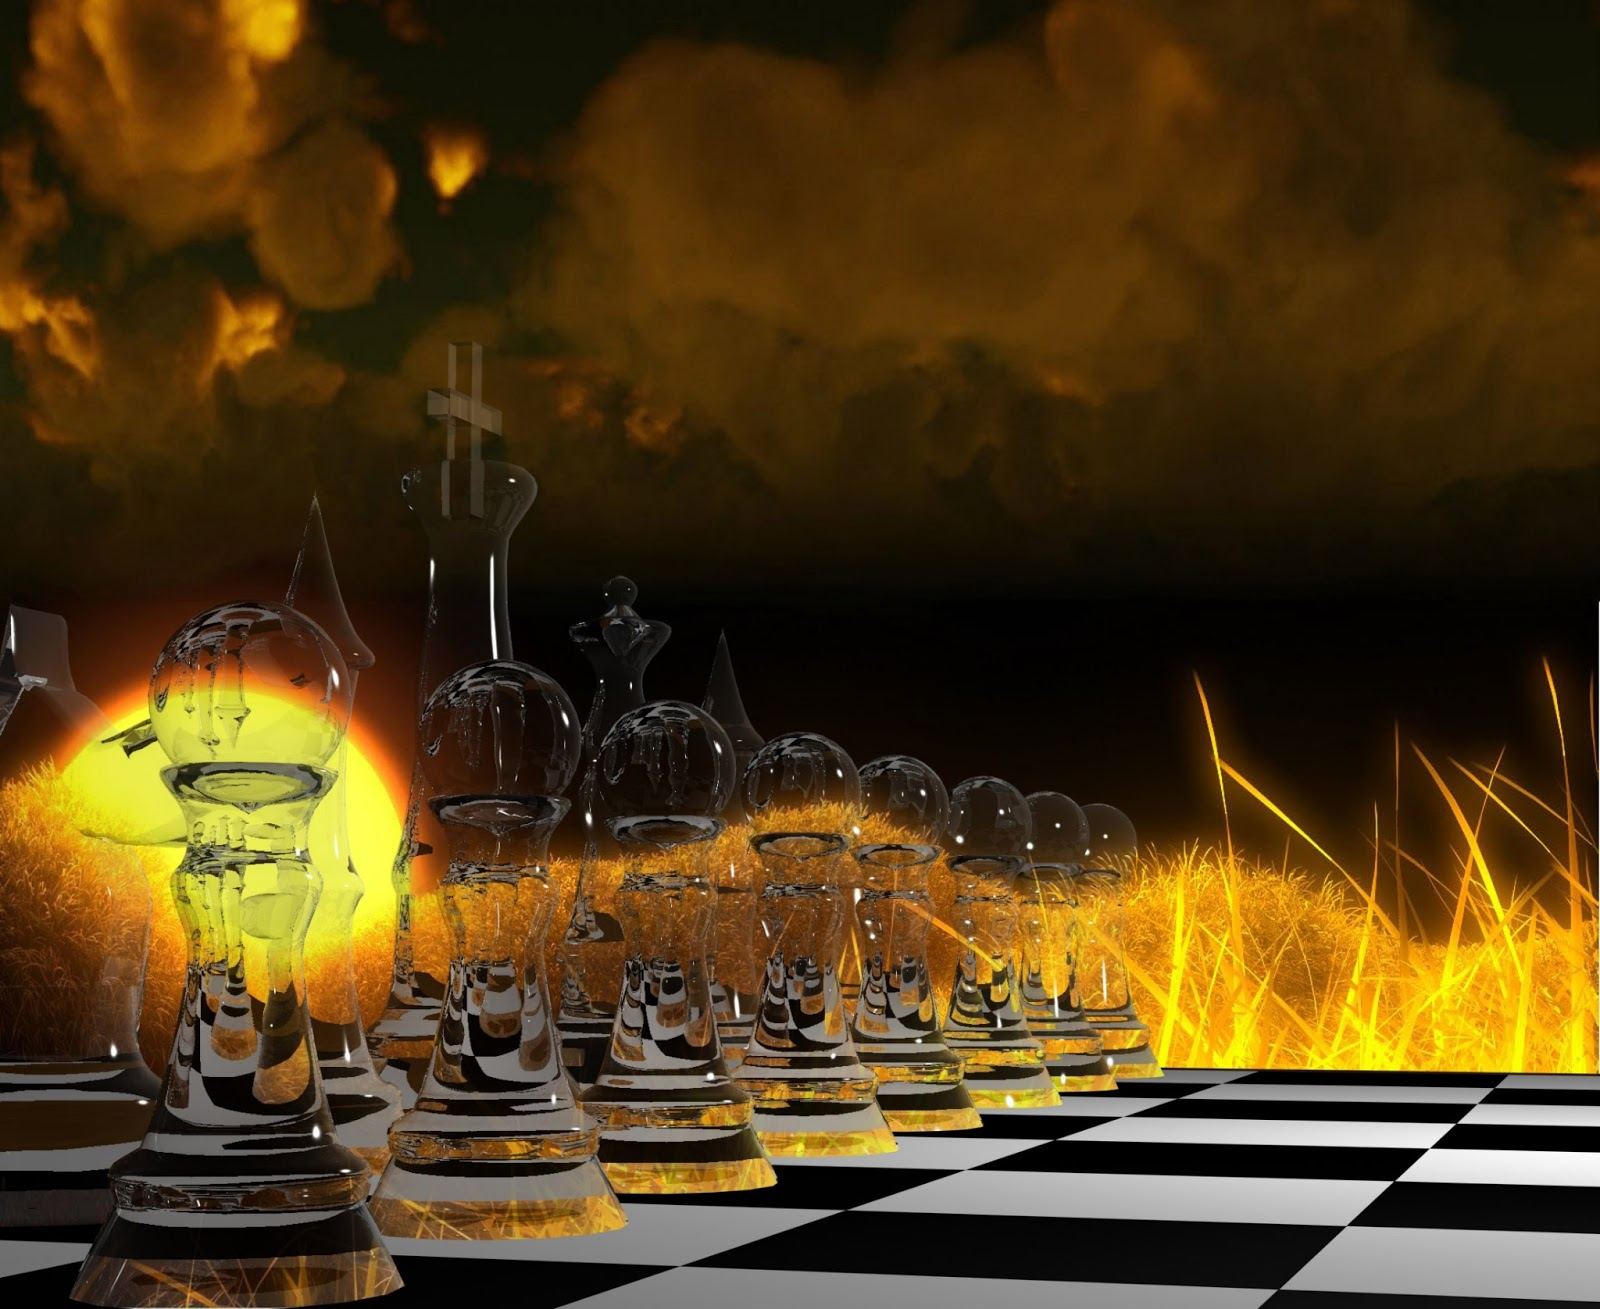 Chess Wallpaper Chess Game Hd Wallpapers: Chess Wallpapers For Computer